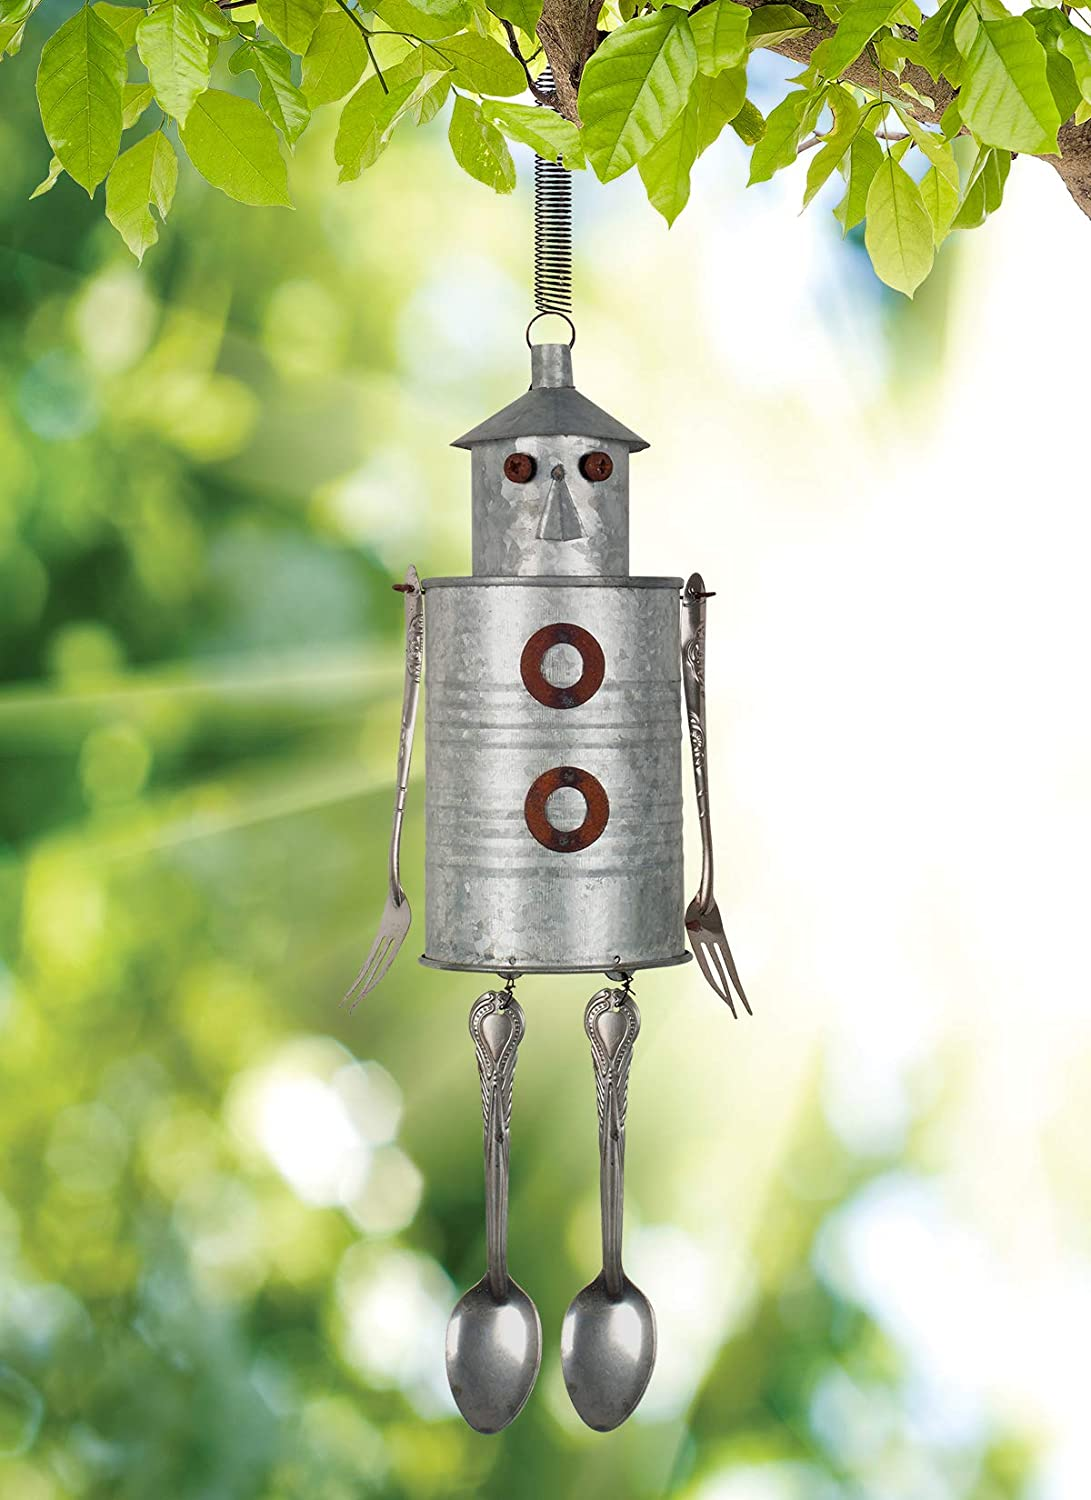 Sunset Vista Designs 14378 Small Tin Man Bouncy Hanging Decoration